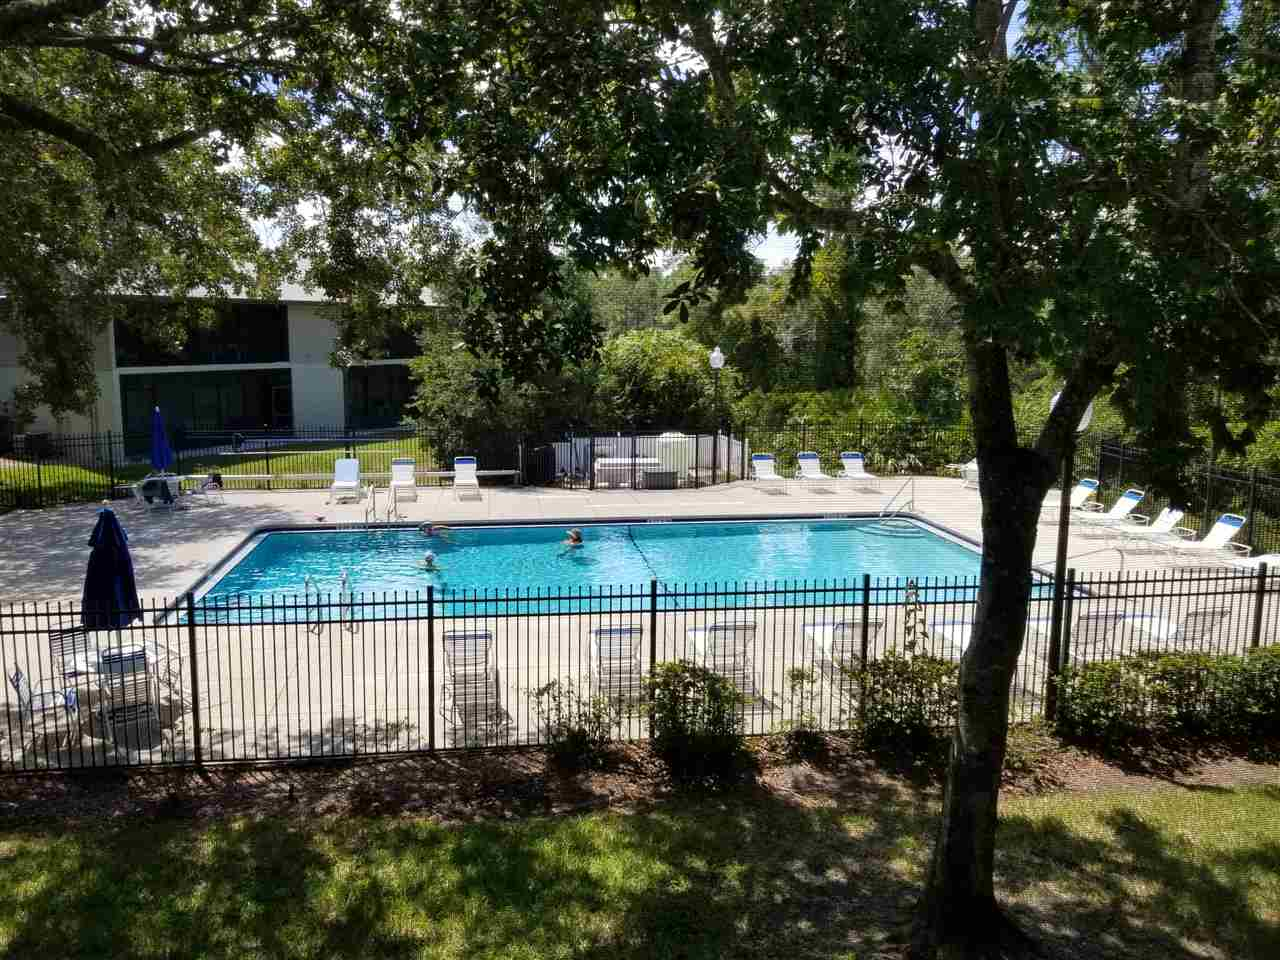 Kick back on your private screened balcony and view the woods and a full view of the pool. It is like living in a tree house. The condo has  new carpet and newer stove, refrigerator, water heater, light fixtures and screens. Very spacious 2nd floor unit has been meticulously maintained.  Washer and dryer in closet off of the balcony and are included. This is an Intracoastal community with 3 pools, 1 always heated, tennis and nature trails. The community boat dock is just steps away as is a park.